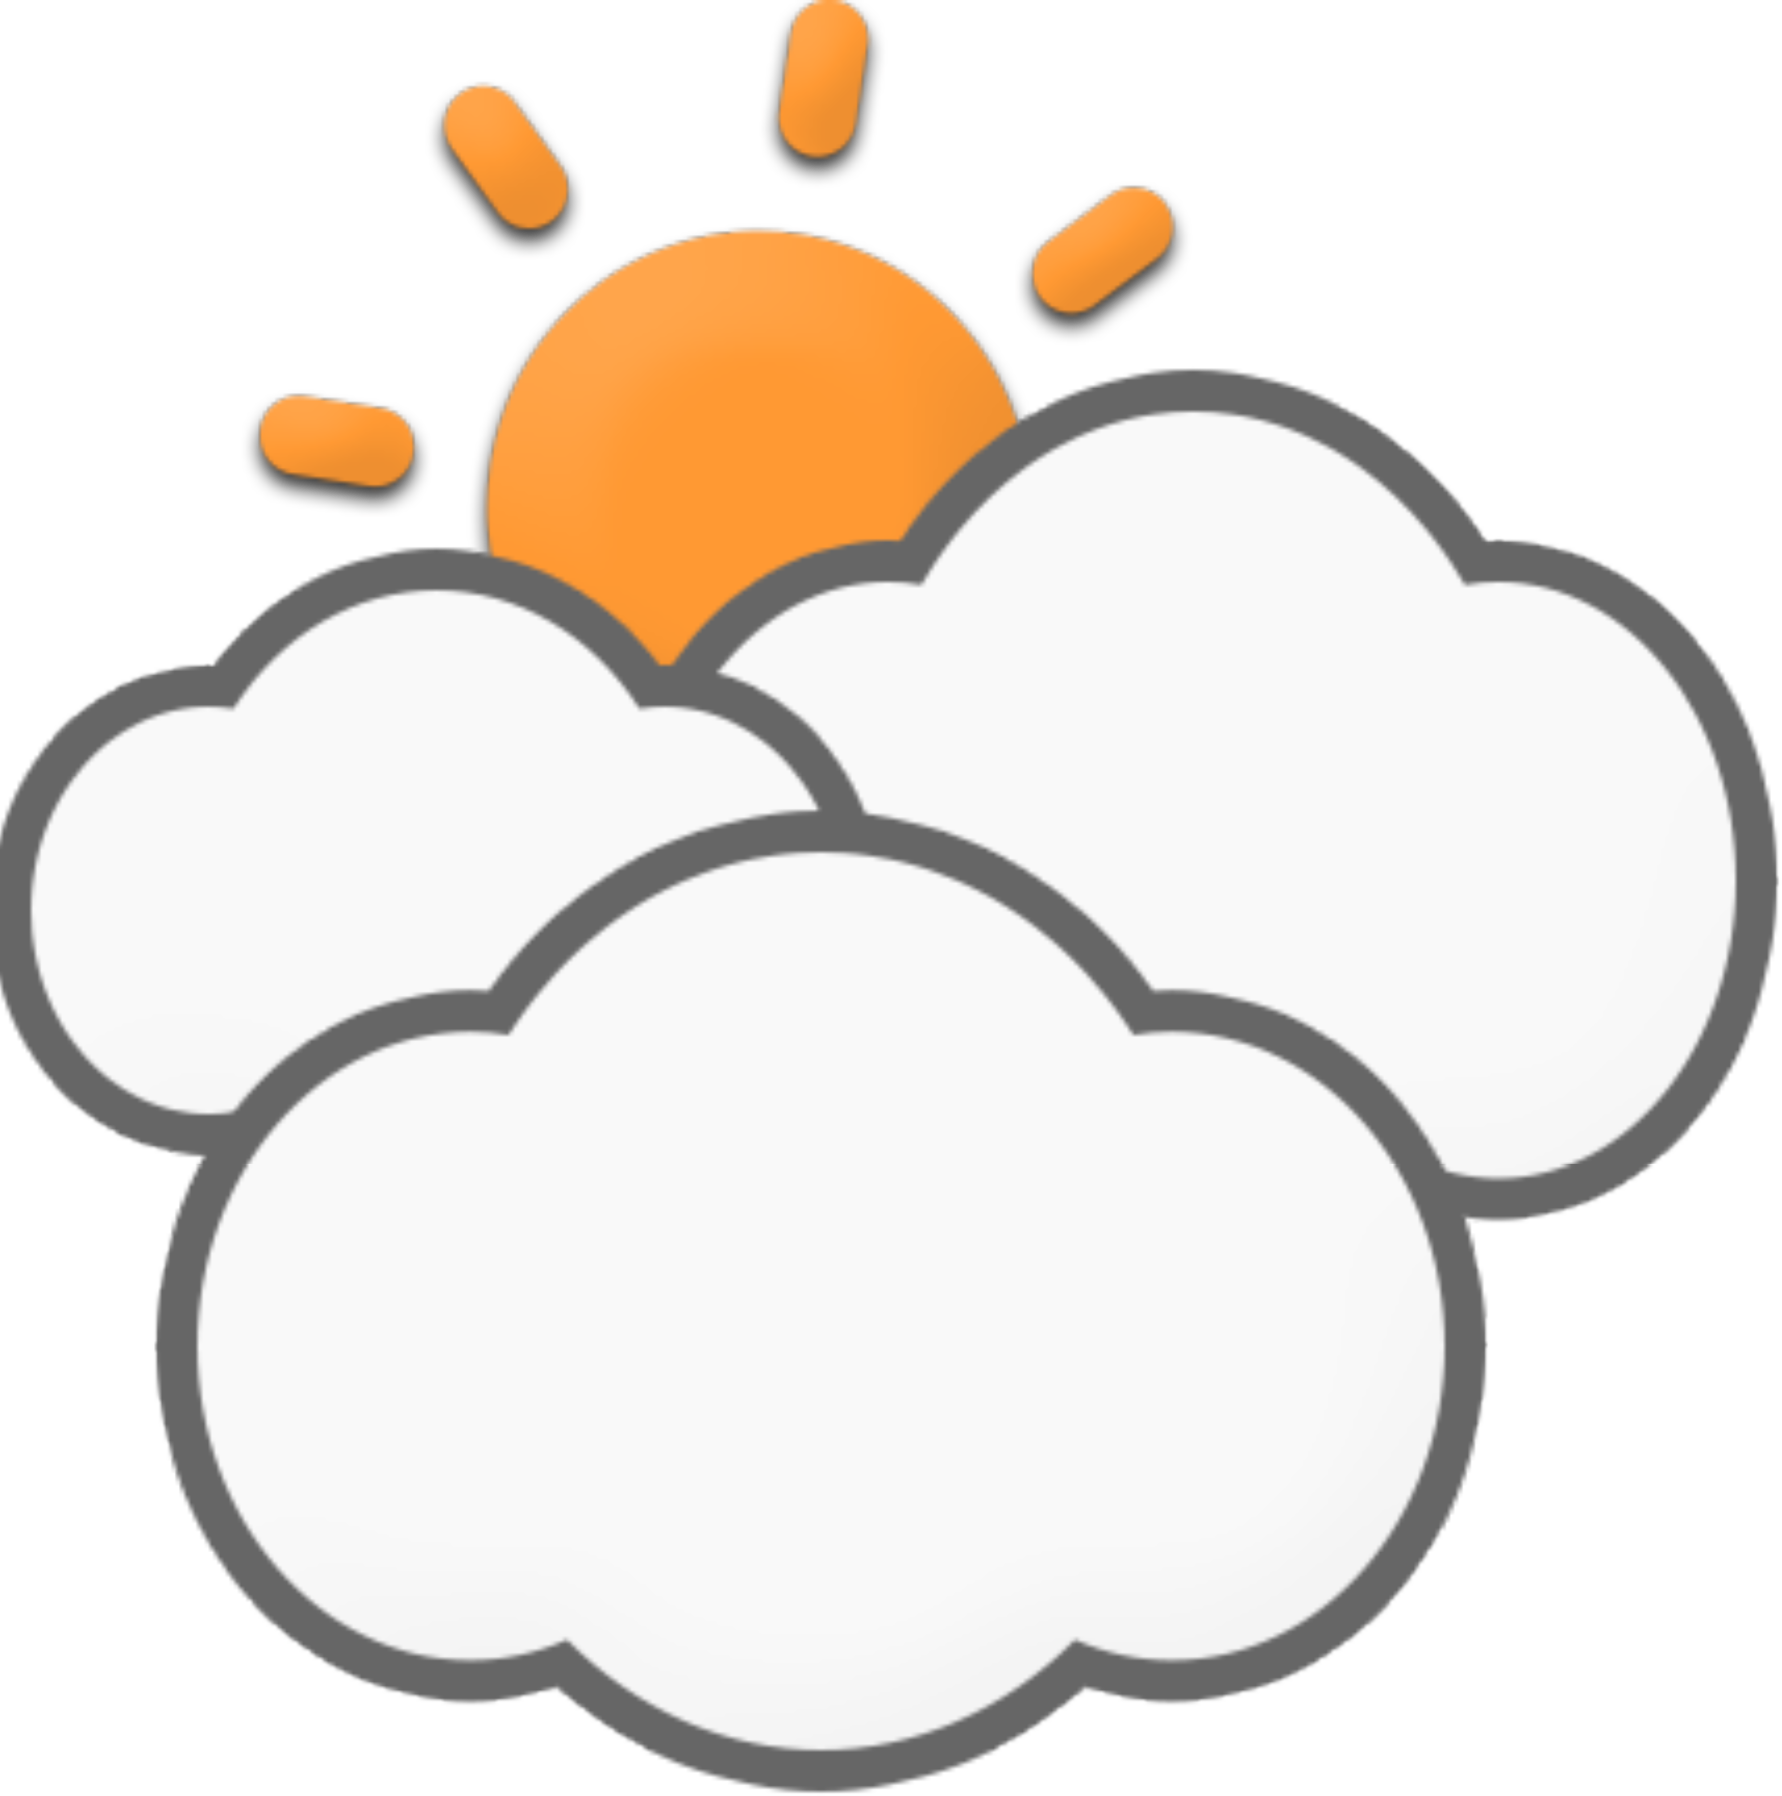 Sun clipart for weather forecast clipart royalty free library Maldives, Maldives Weather Forecast - Holiday Weather clipart royalty free library